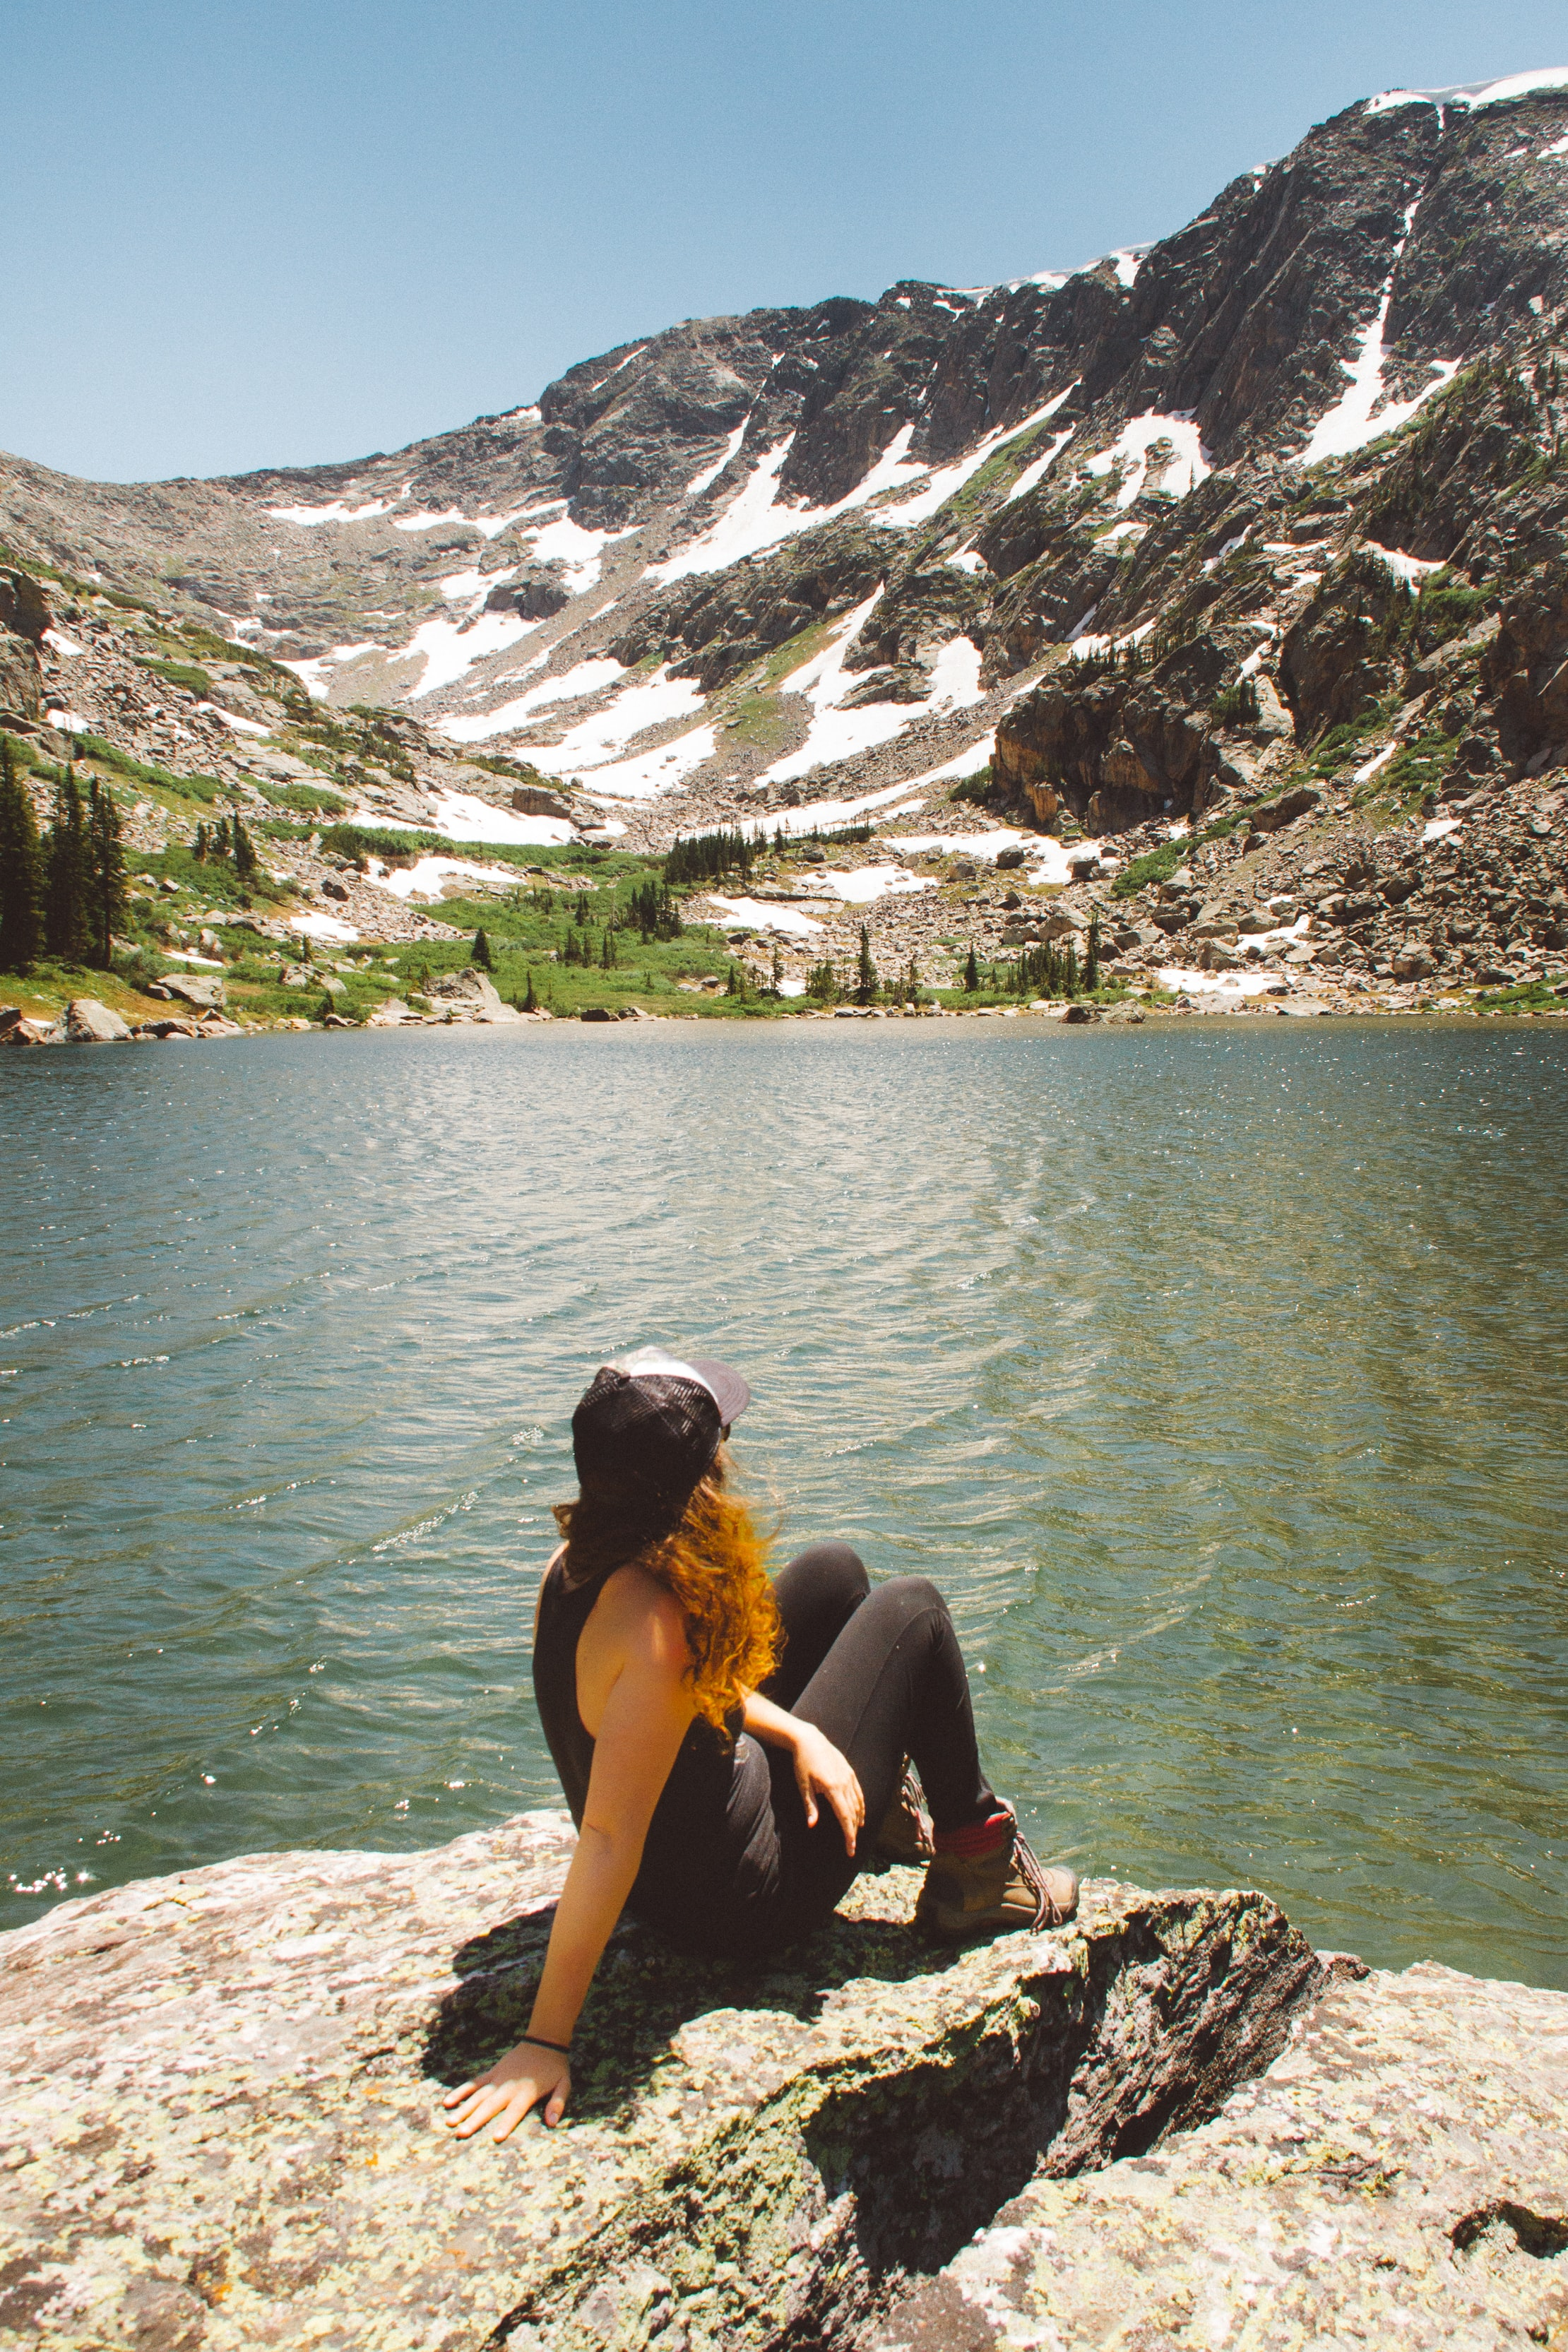 woman sitting on rock formation looking through snowcap mountain near body of water